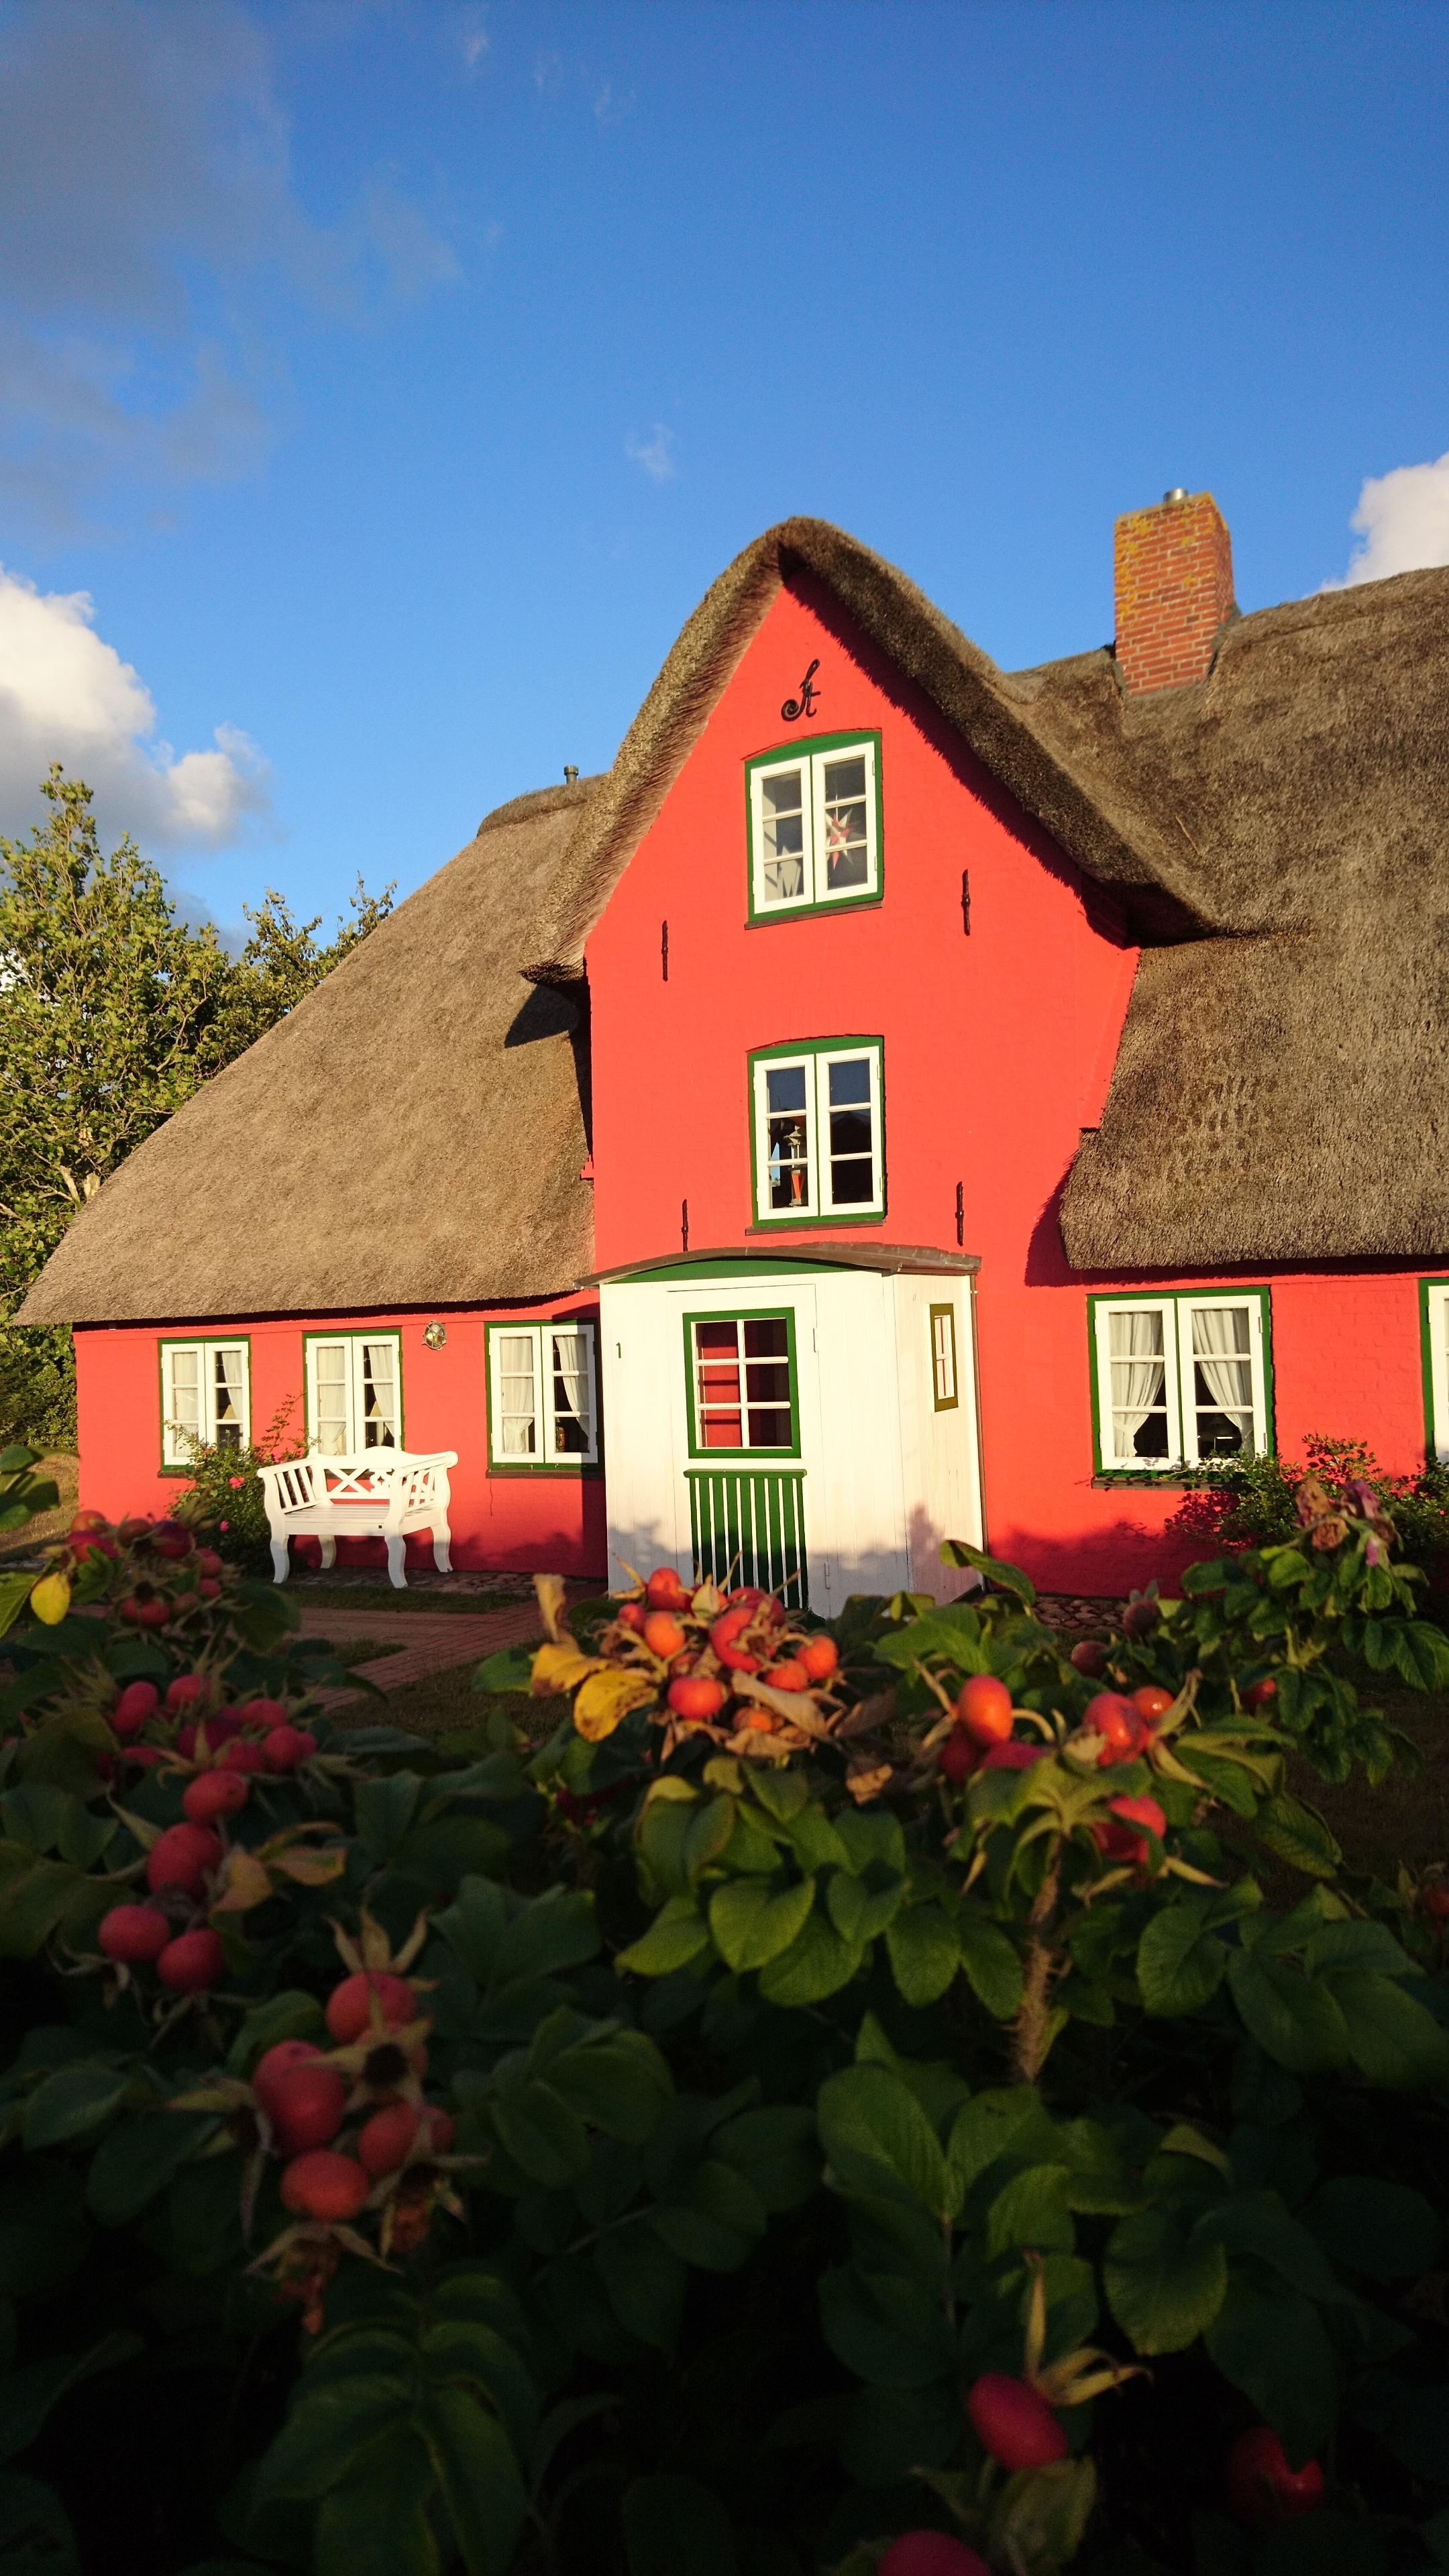 I felt in love with the red house ☀️